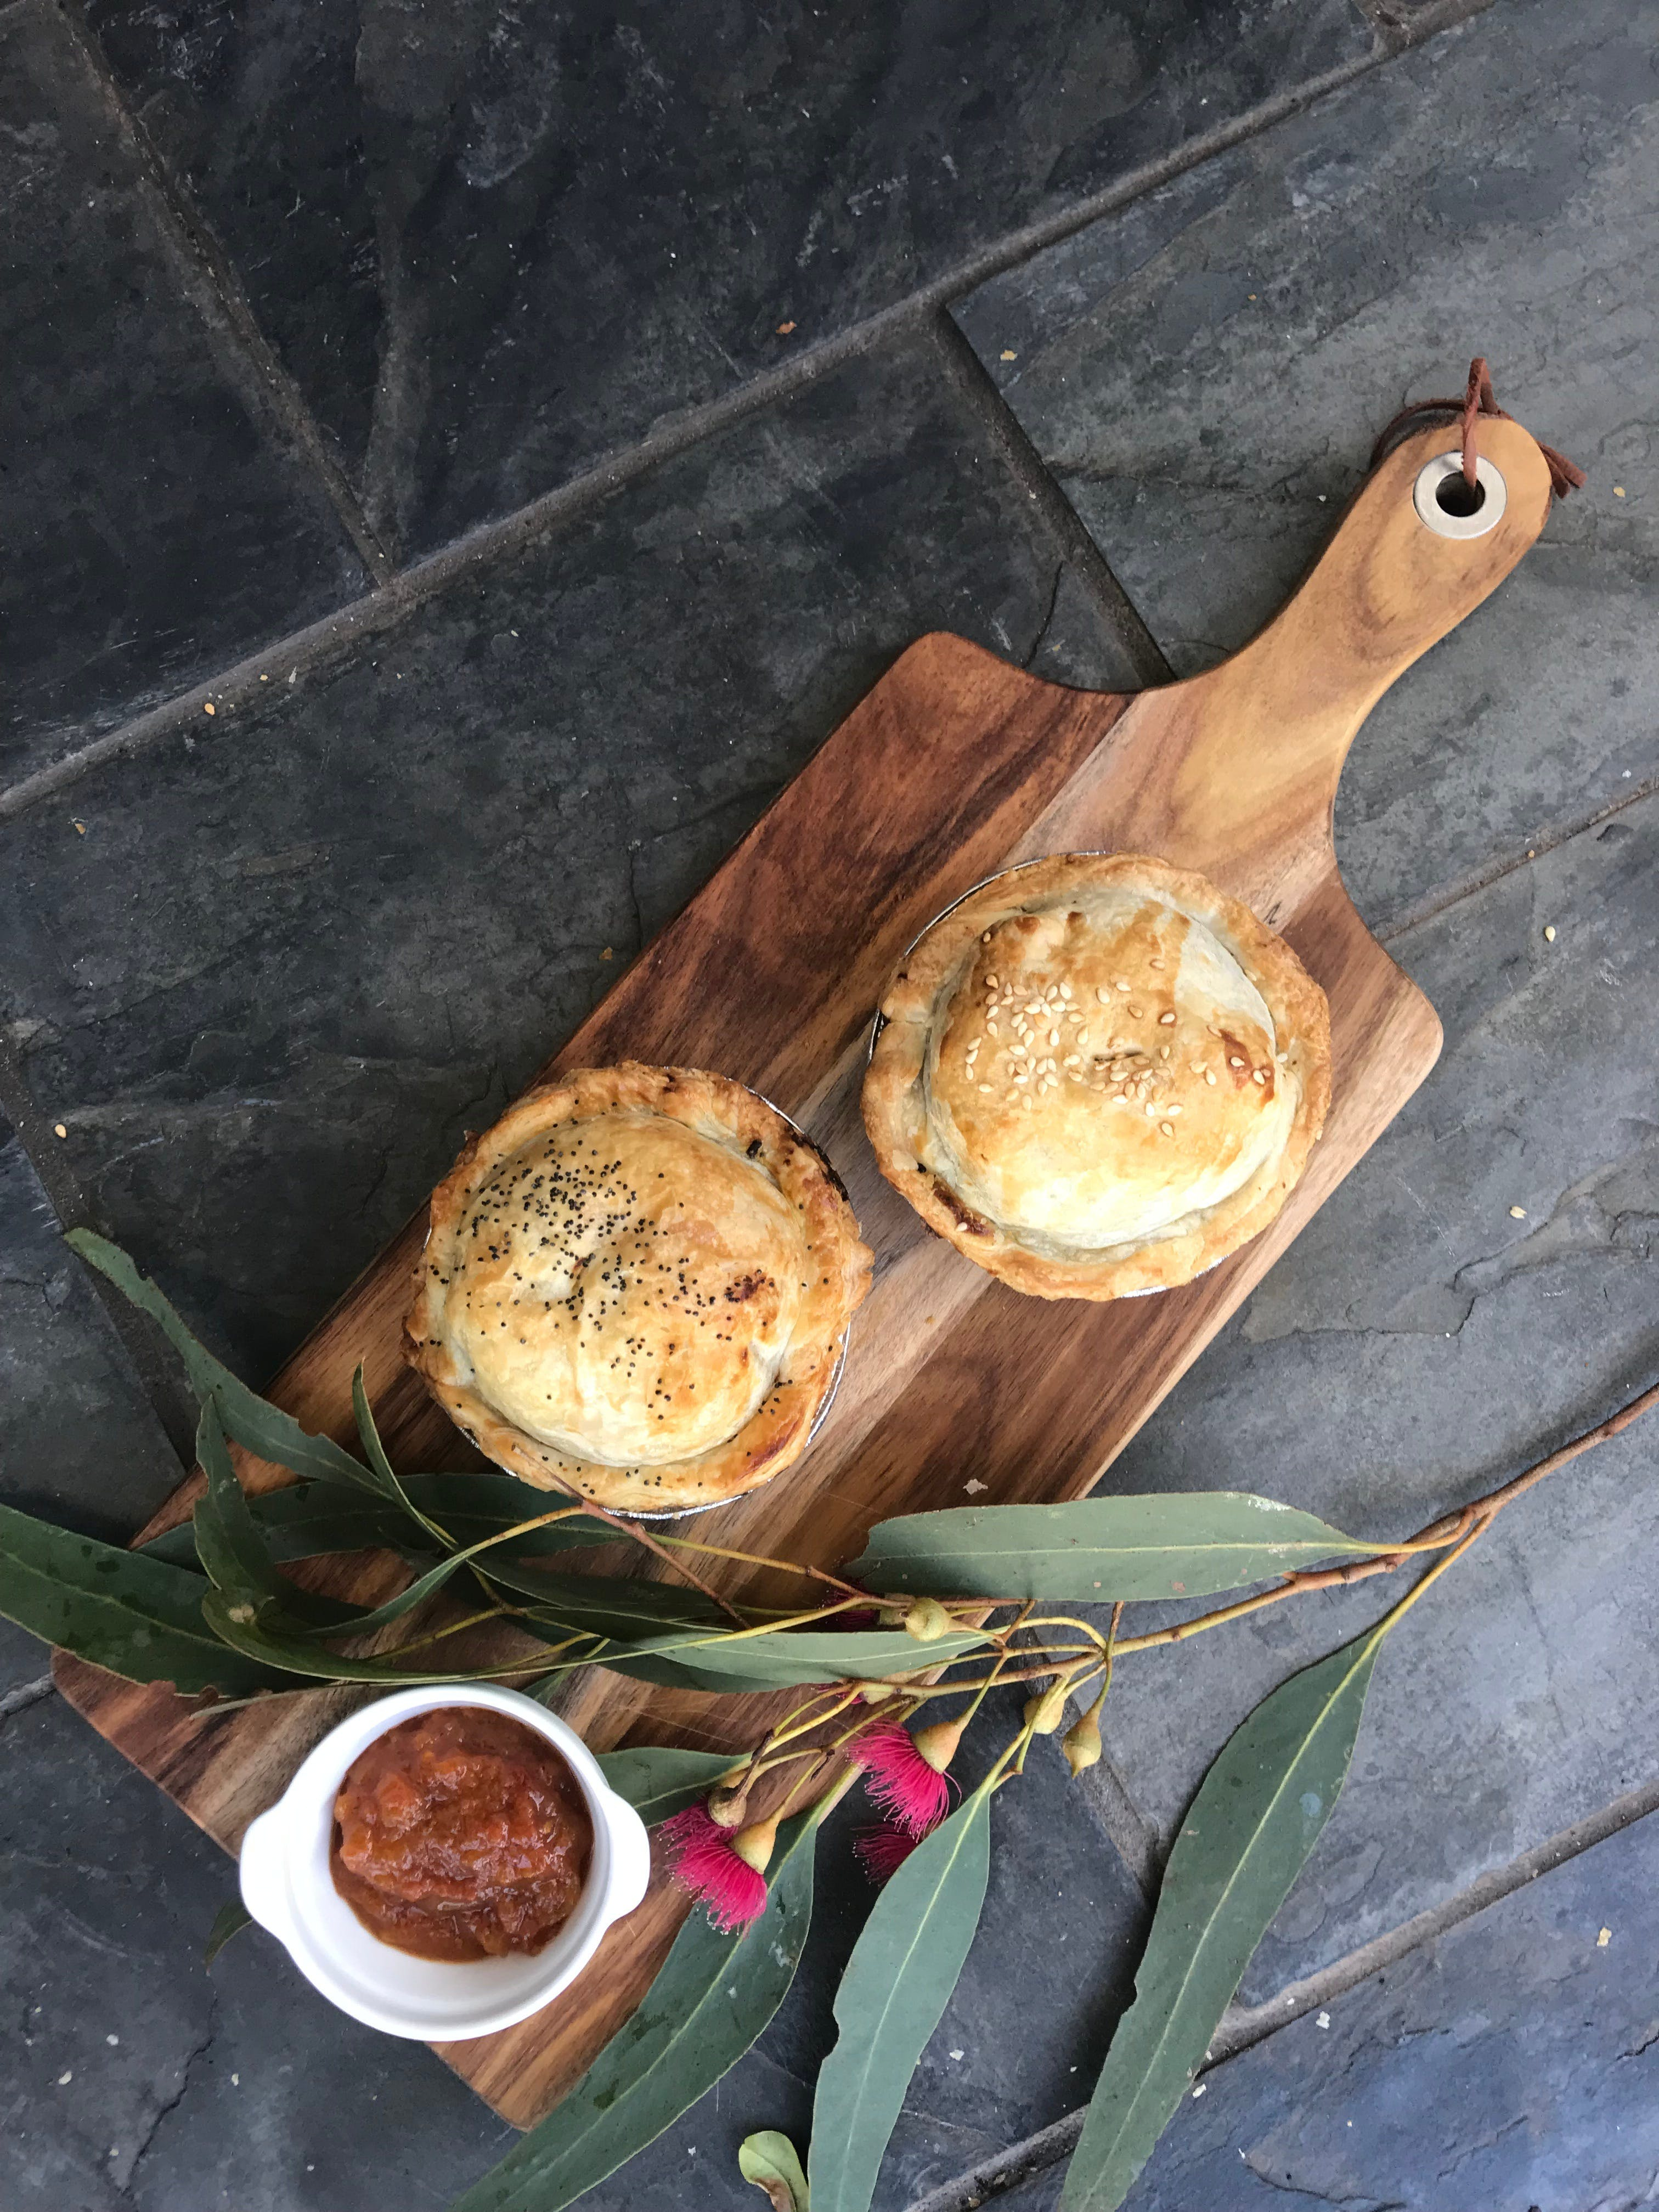 Aged Wine and Vintage Pies - Accommodation Resorts